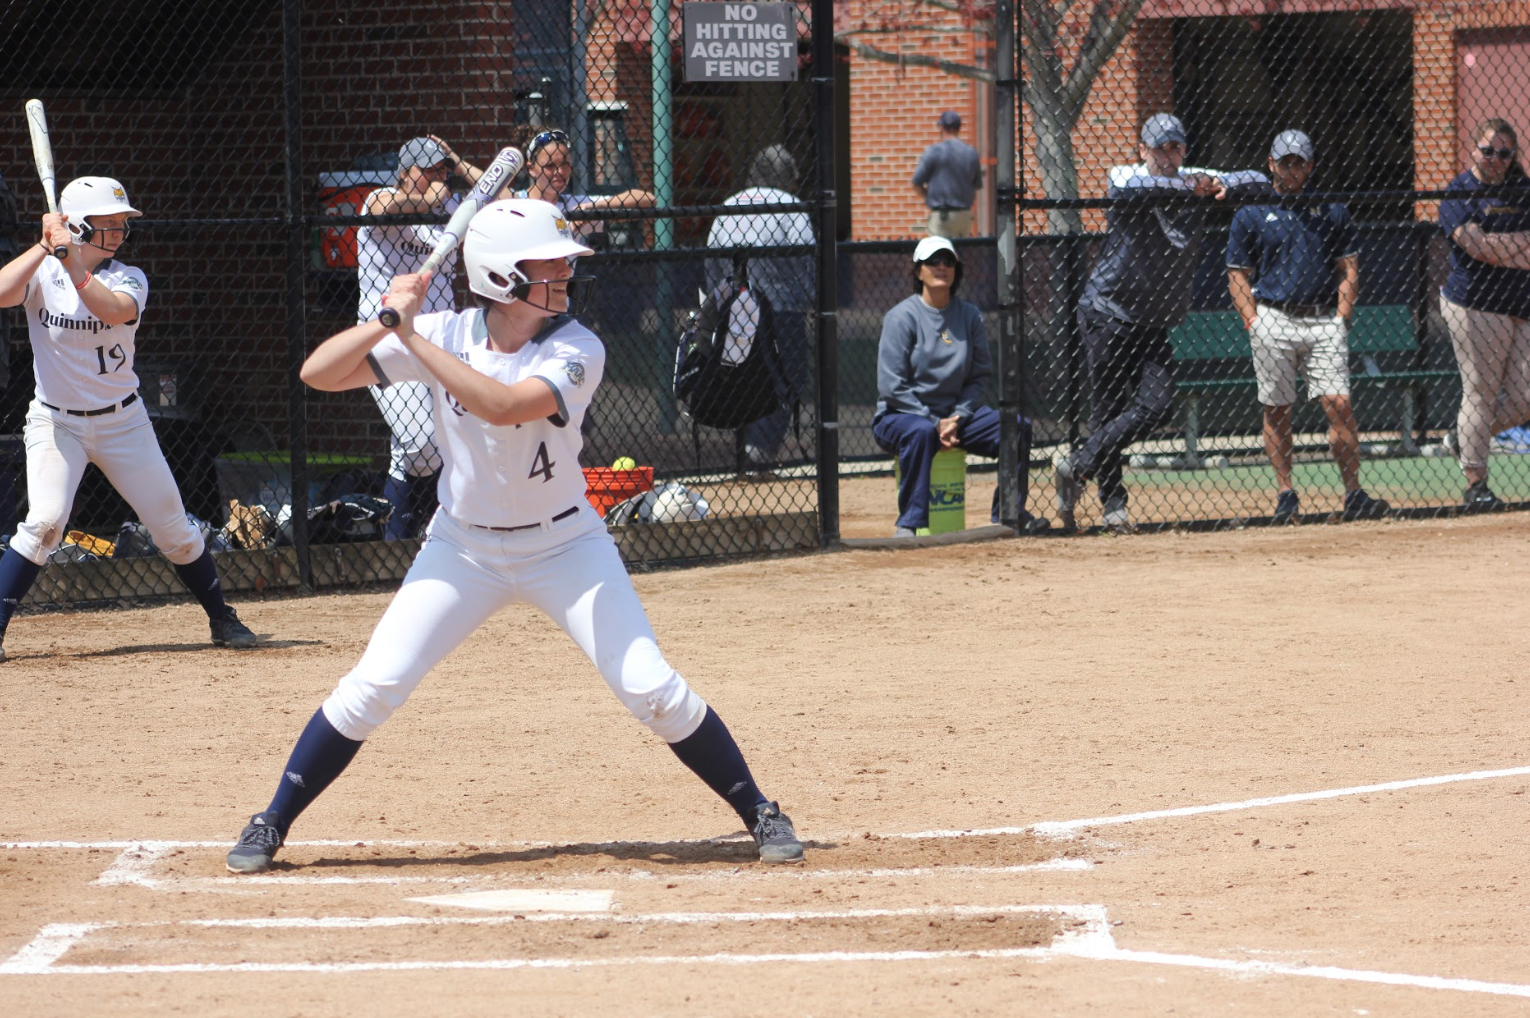 Fairfield sweeps Quinnipiac softball in doubleheader